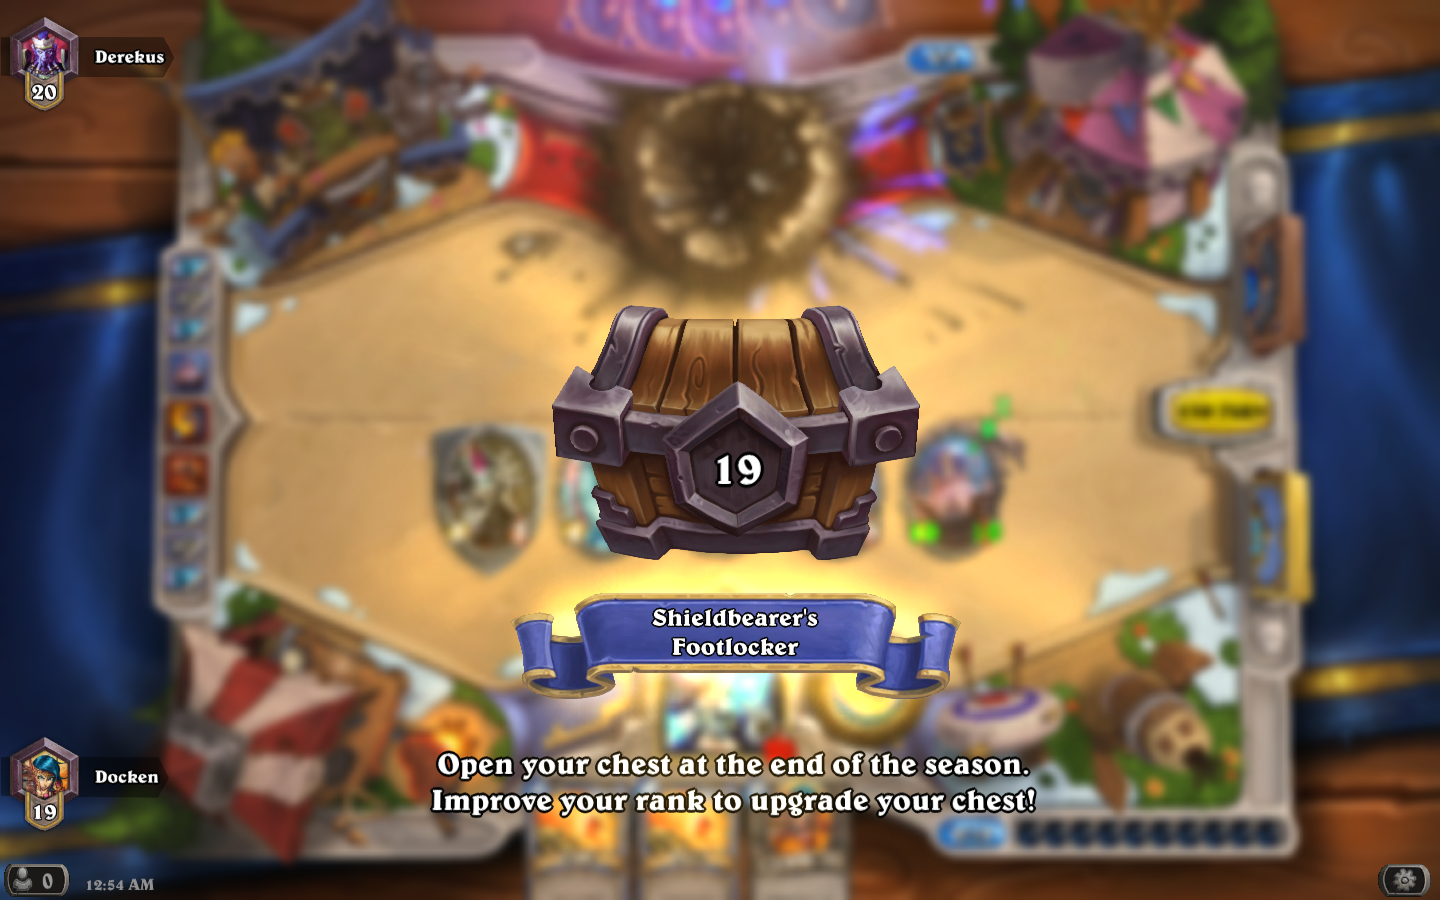 Hearthstone screenshot 07 16 16 00.54.27